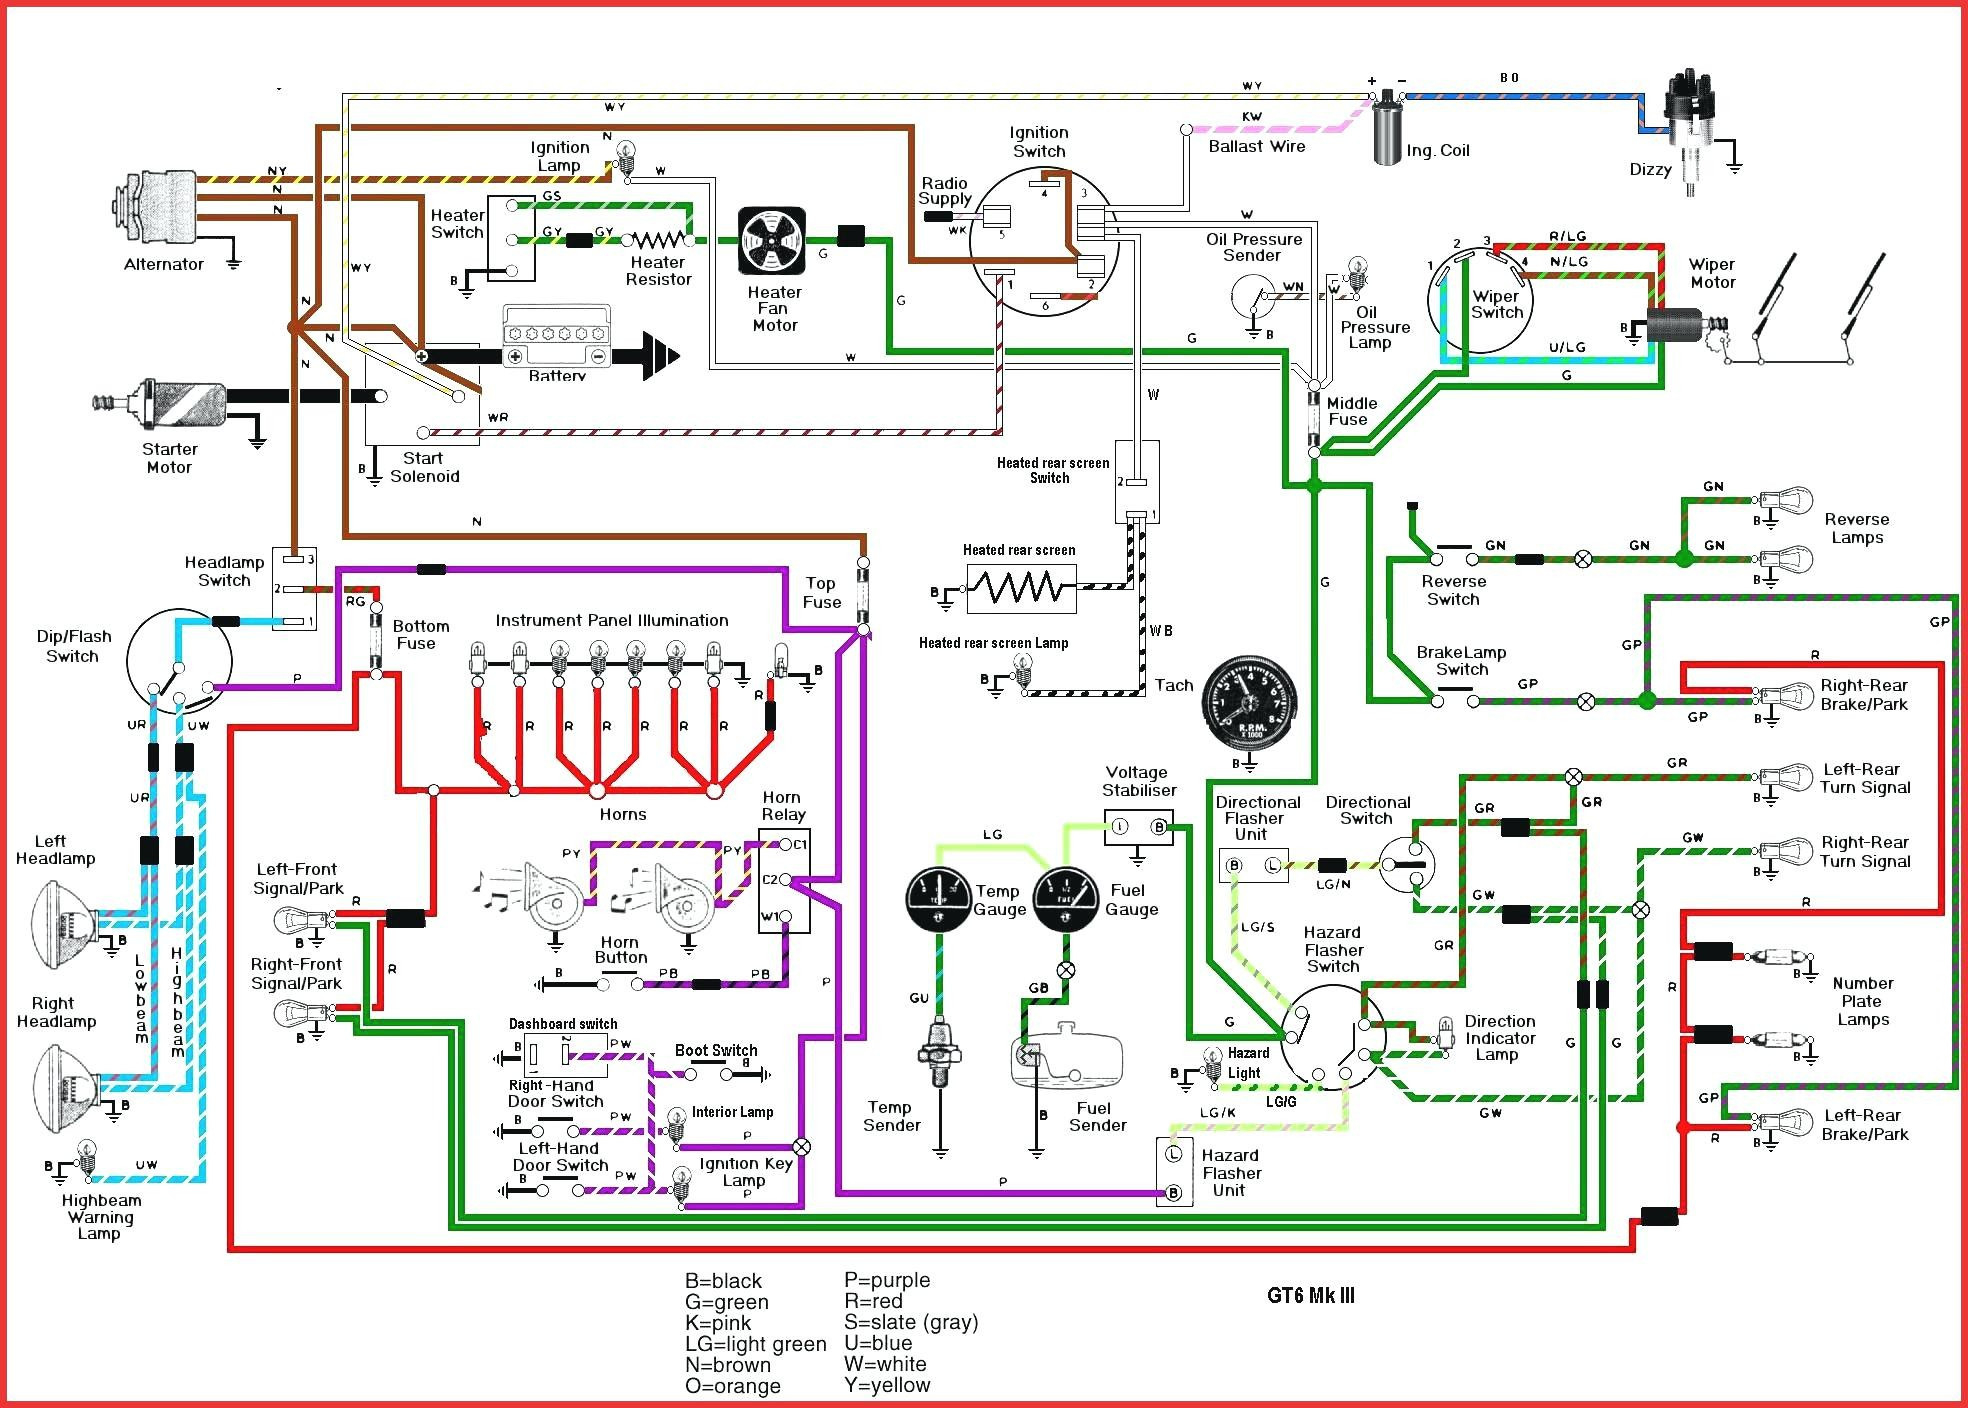 House Wiring Diagram With Inverter Example Of Single Phase Wiring - Single Phase House Wiring Diagram